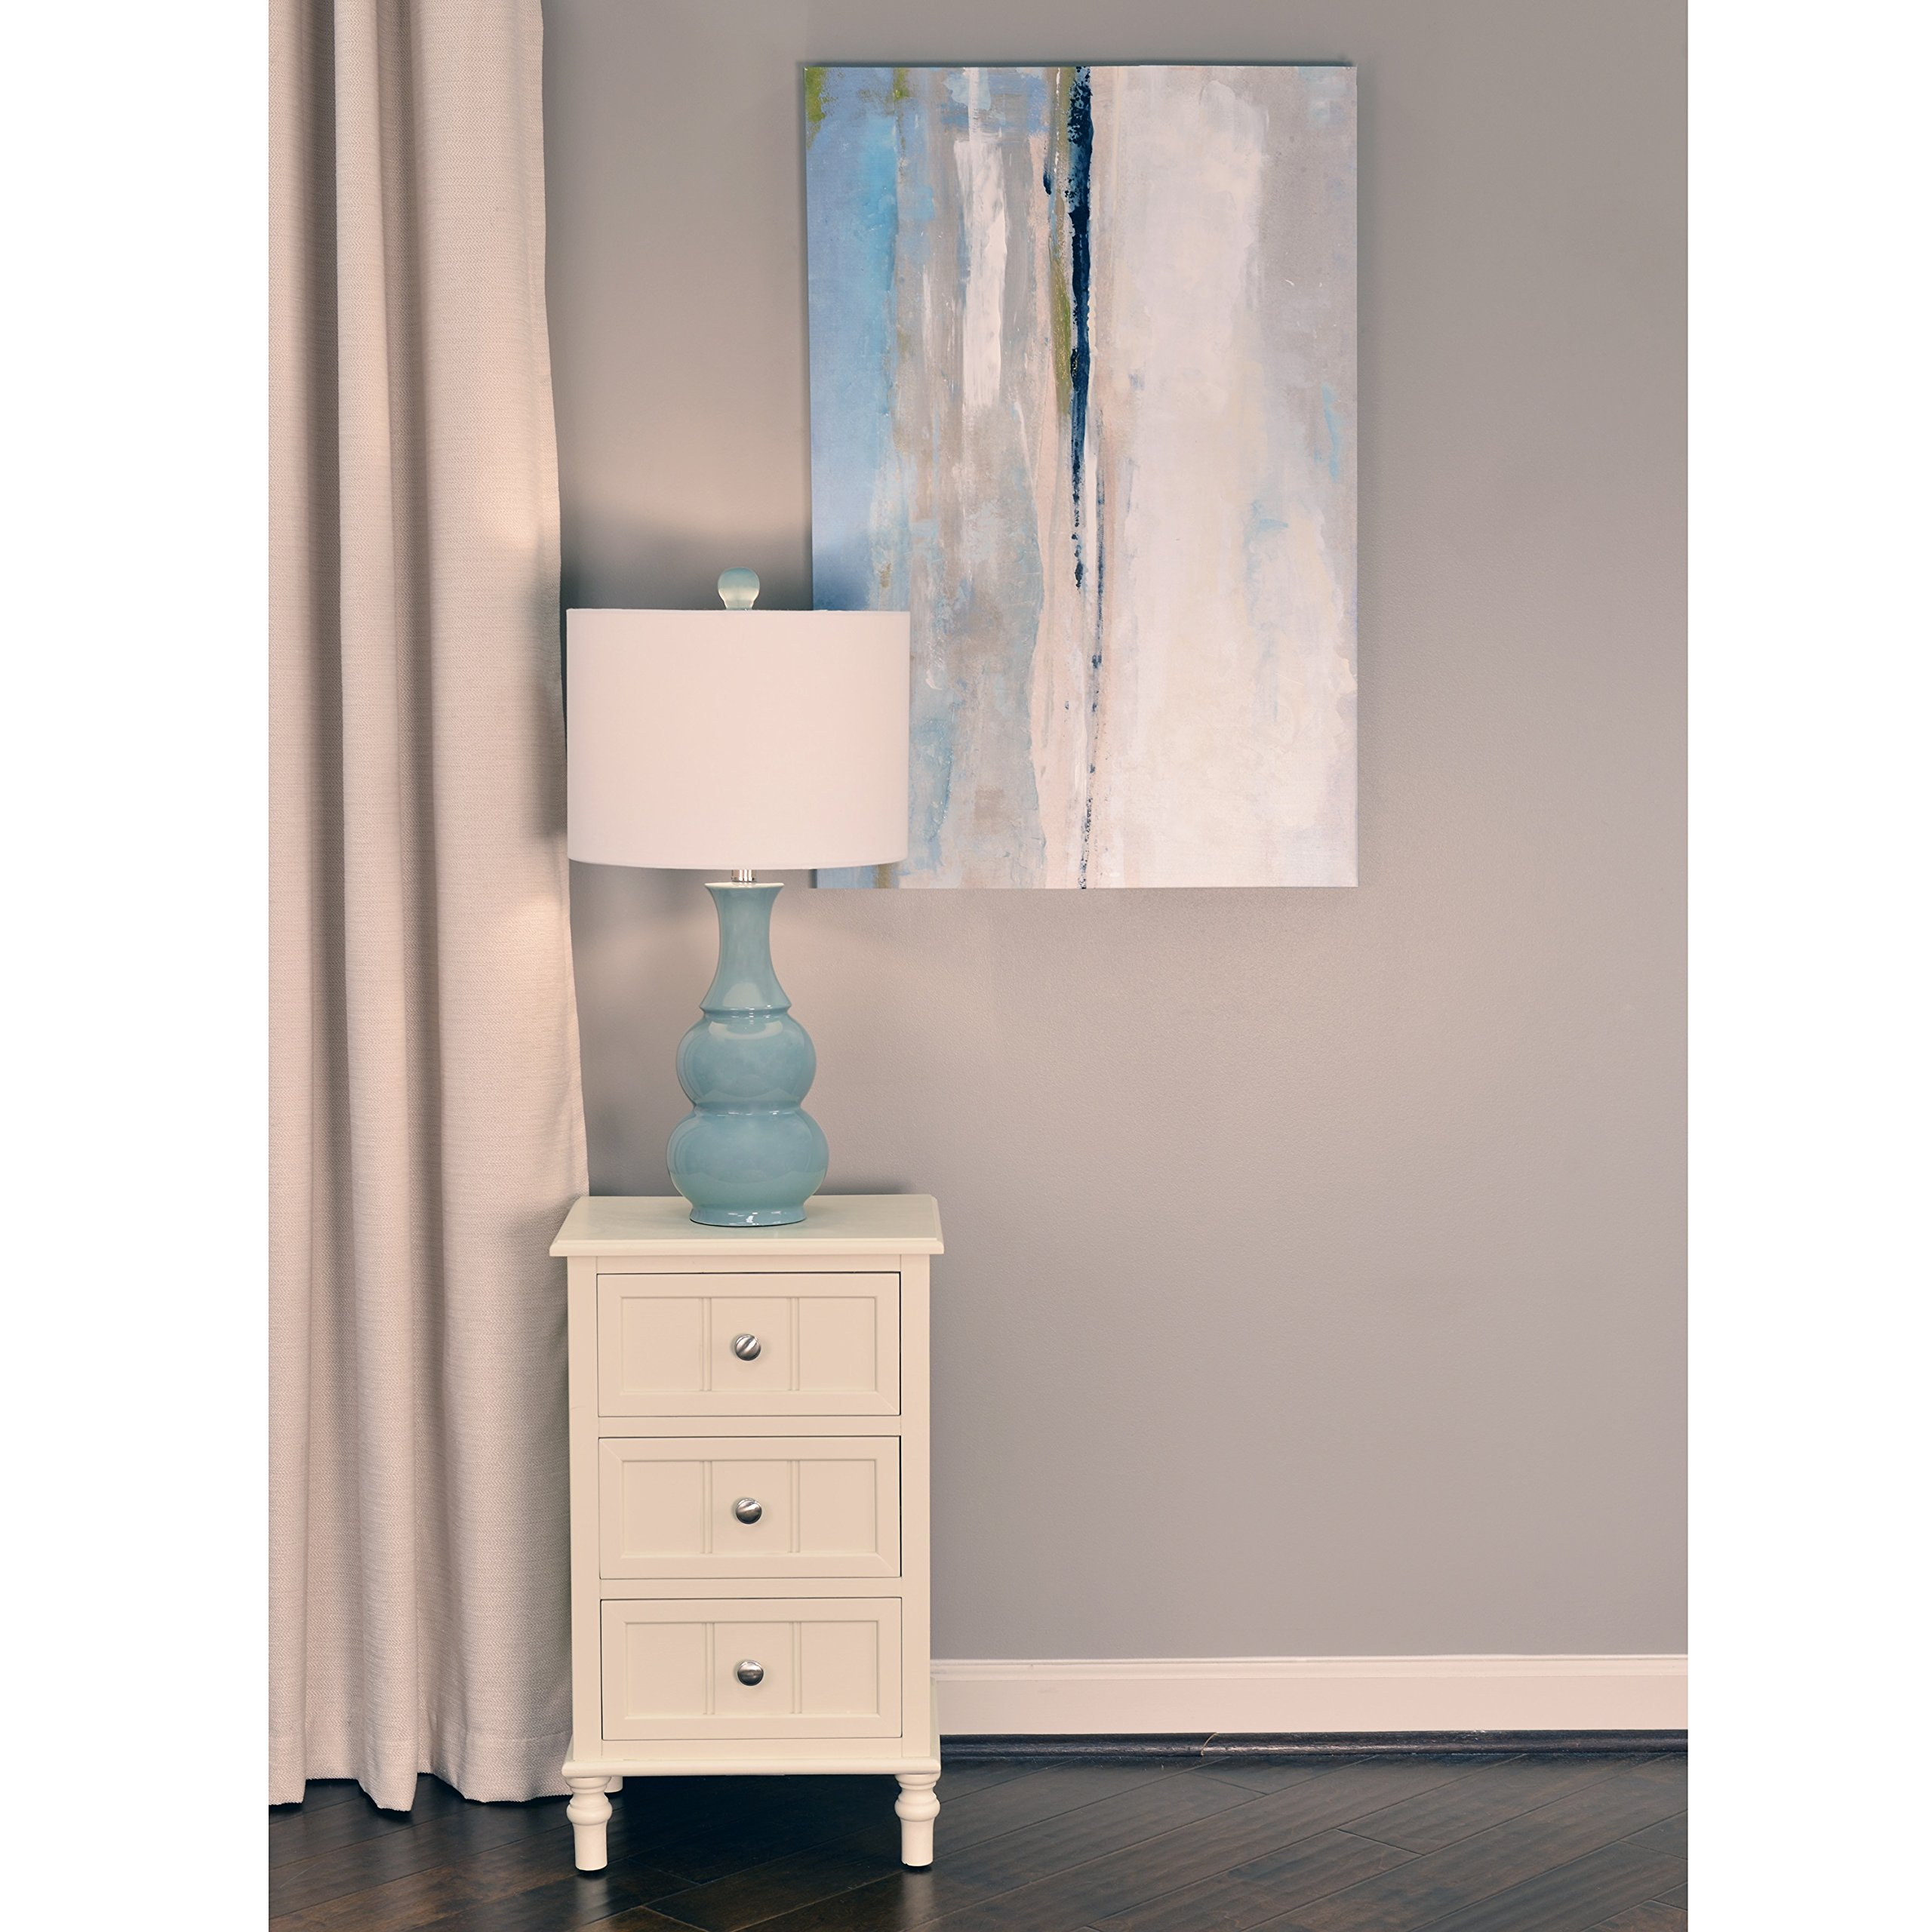 Décor Therapy FR1720 White Finish Three Drawer End Table, Buttermilk by Décor Therapy (Image #5)